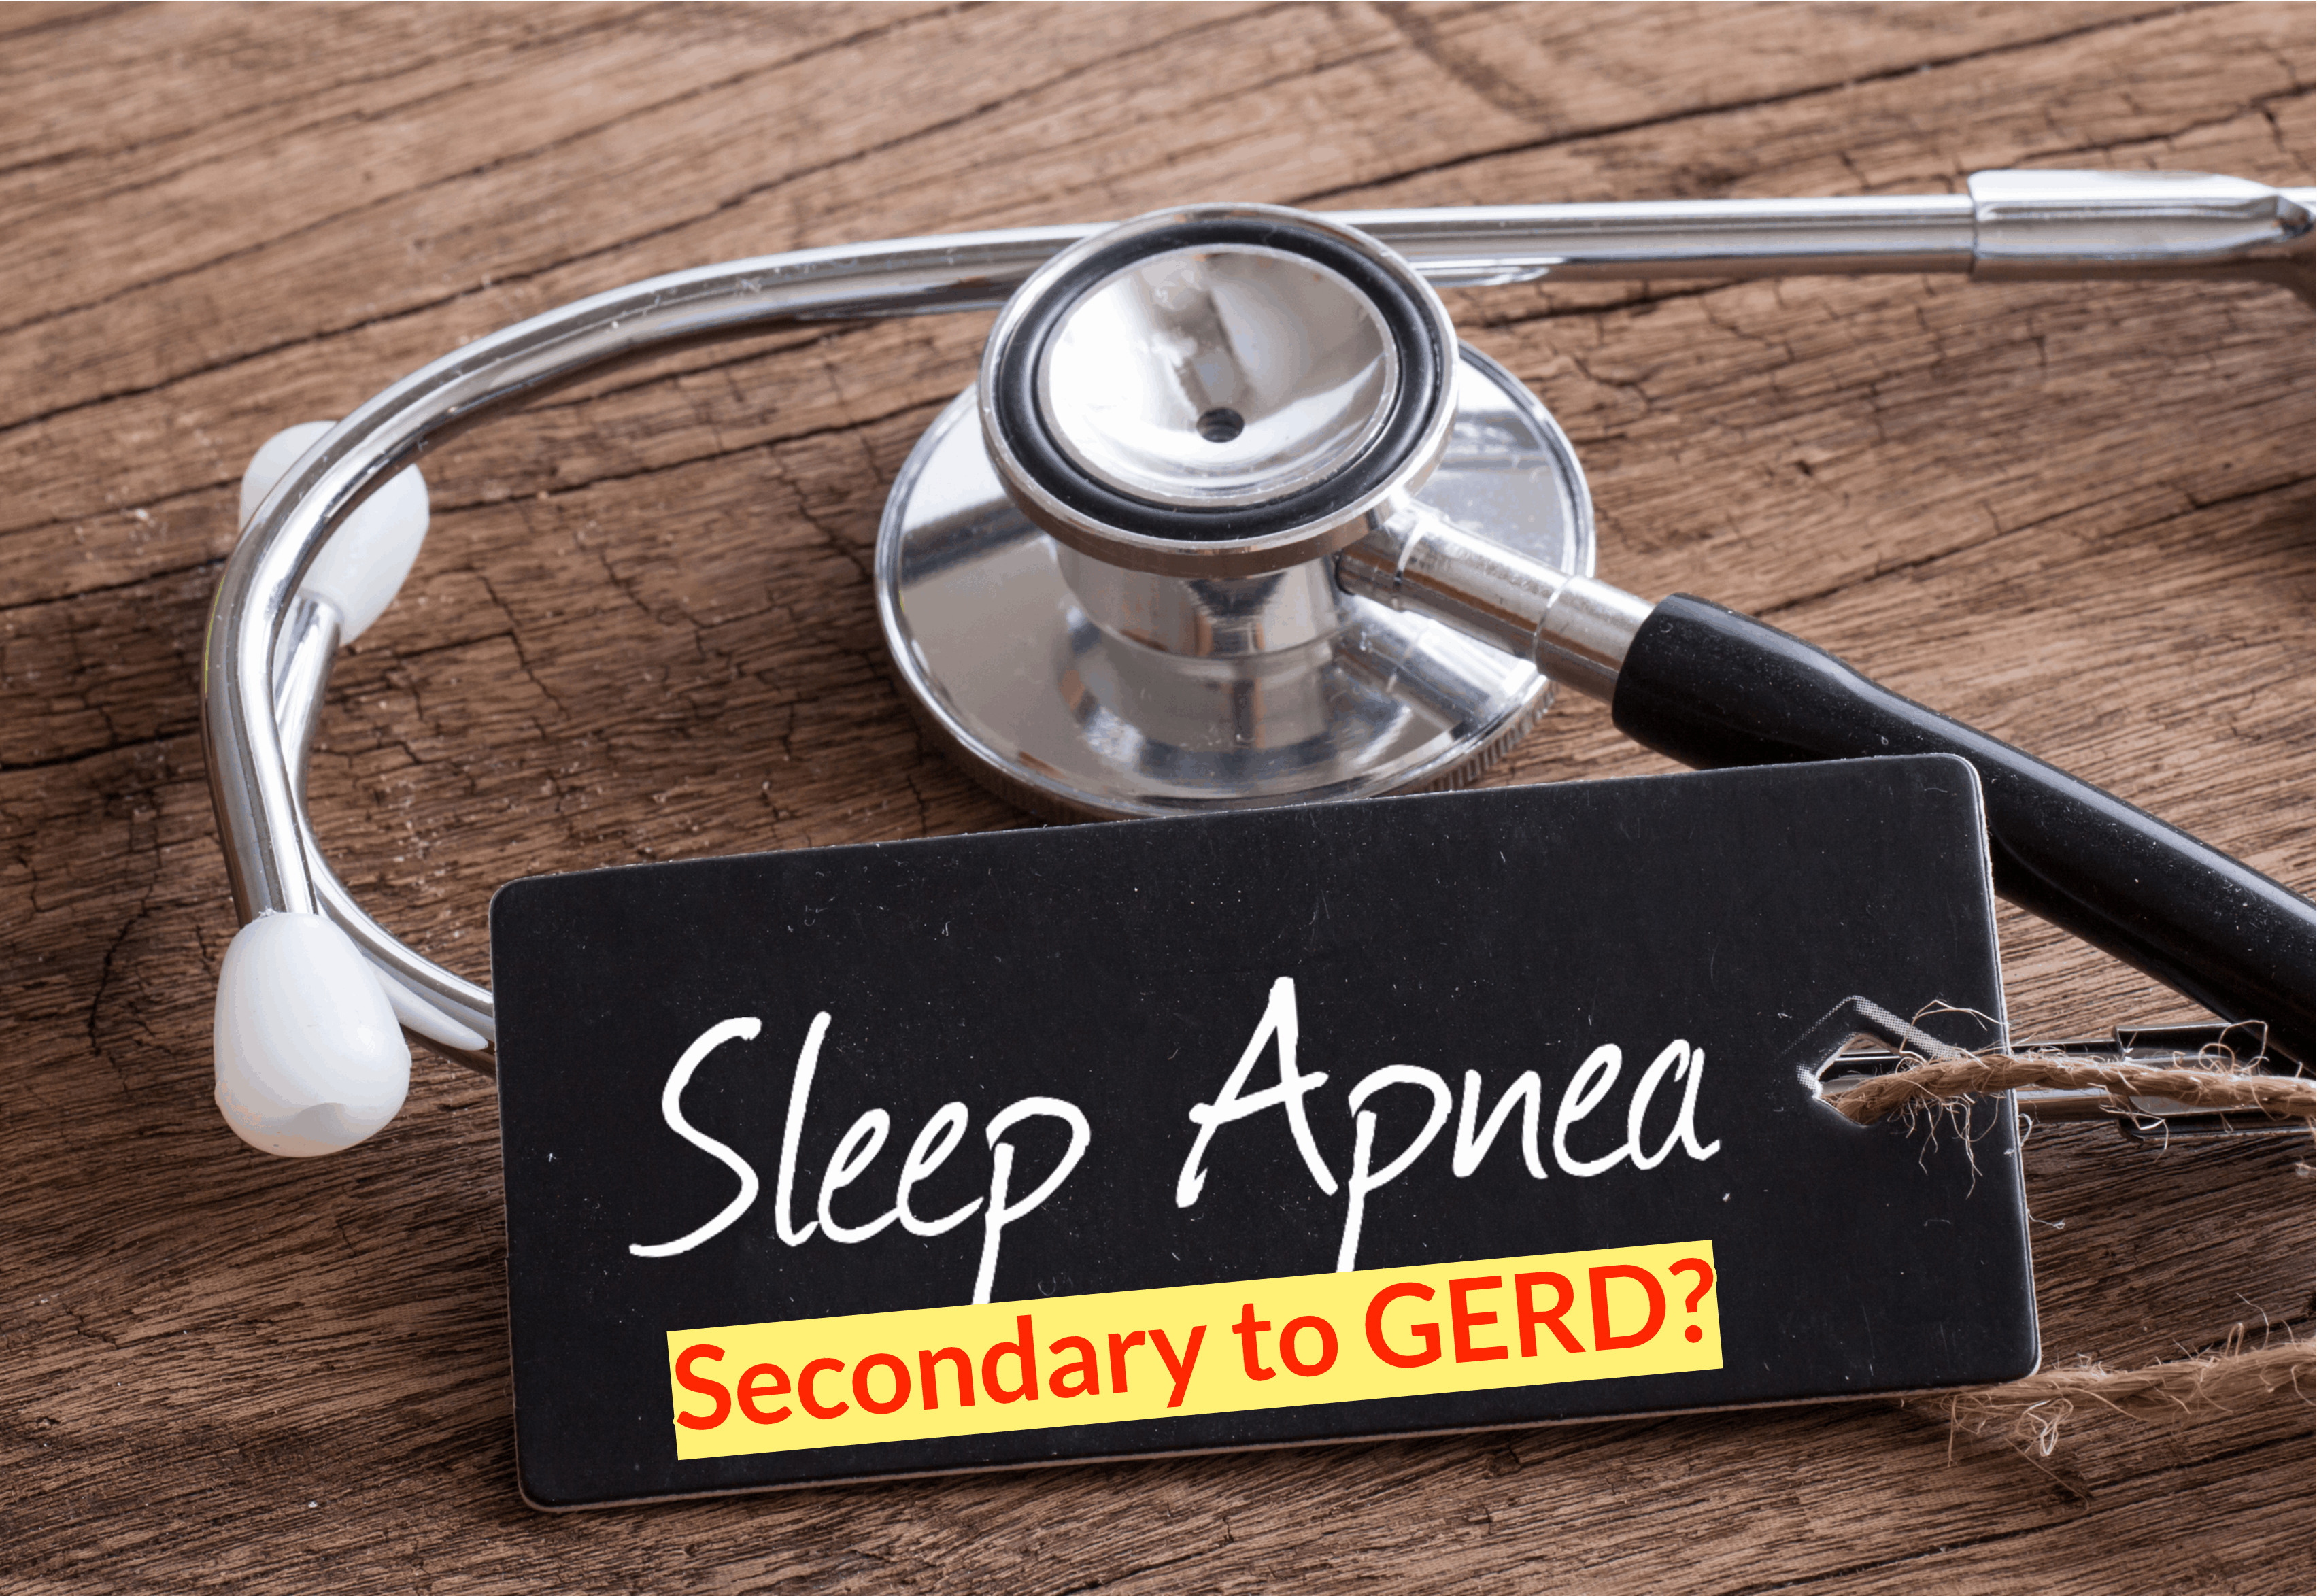 Sleep Apnea Secondary to GERD